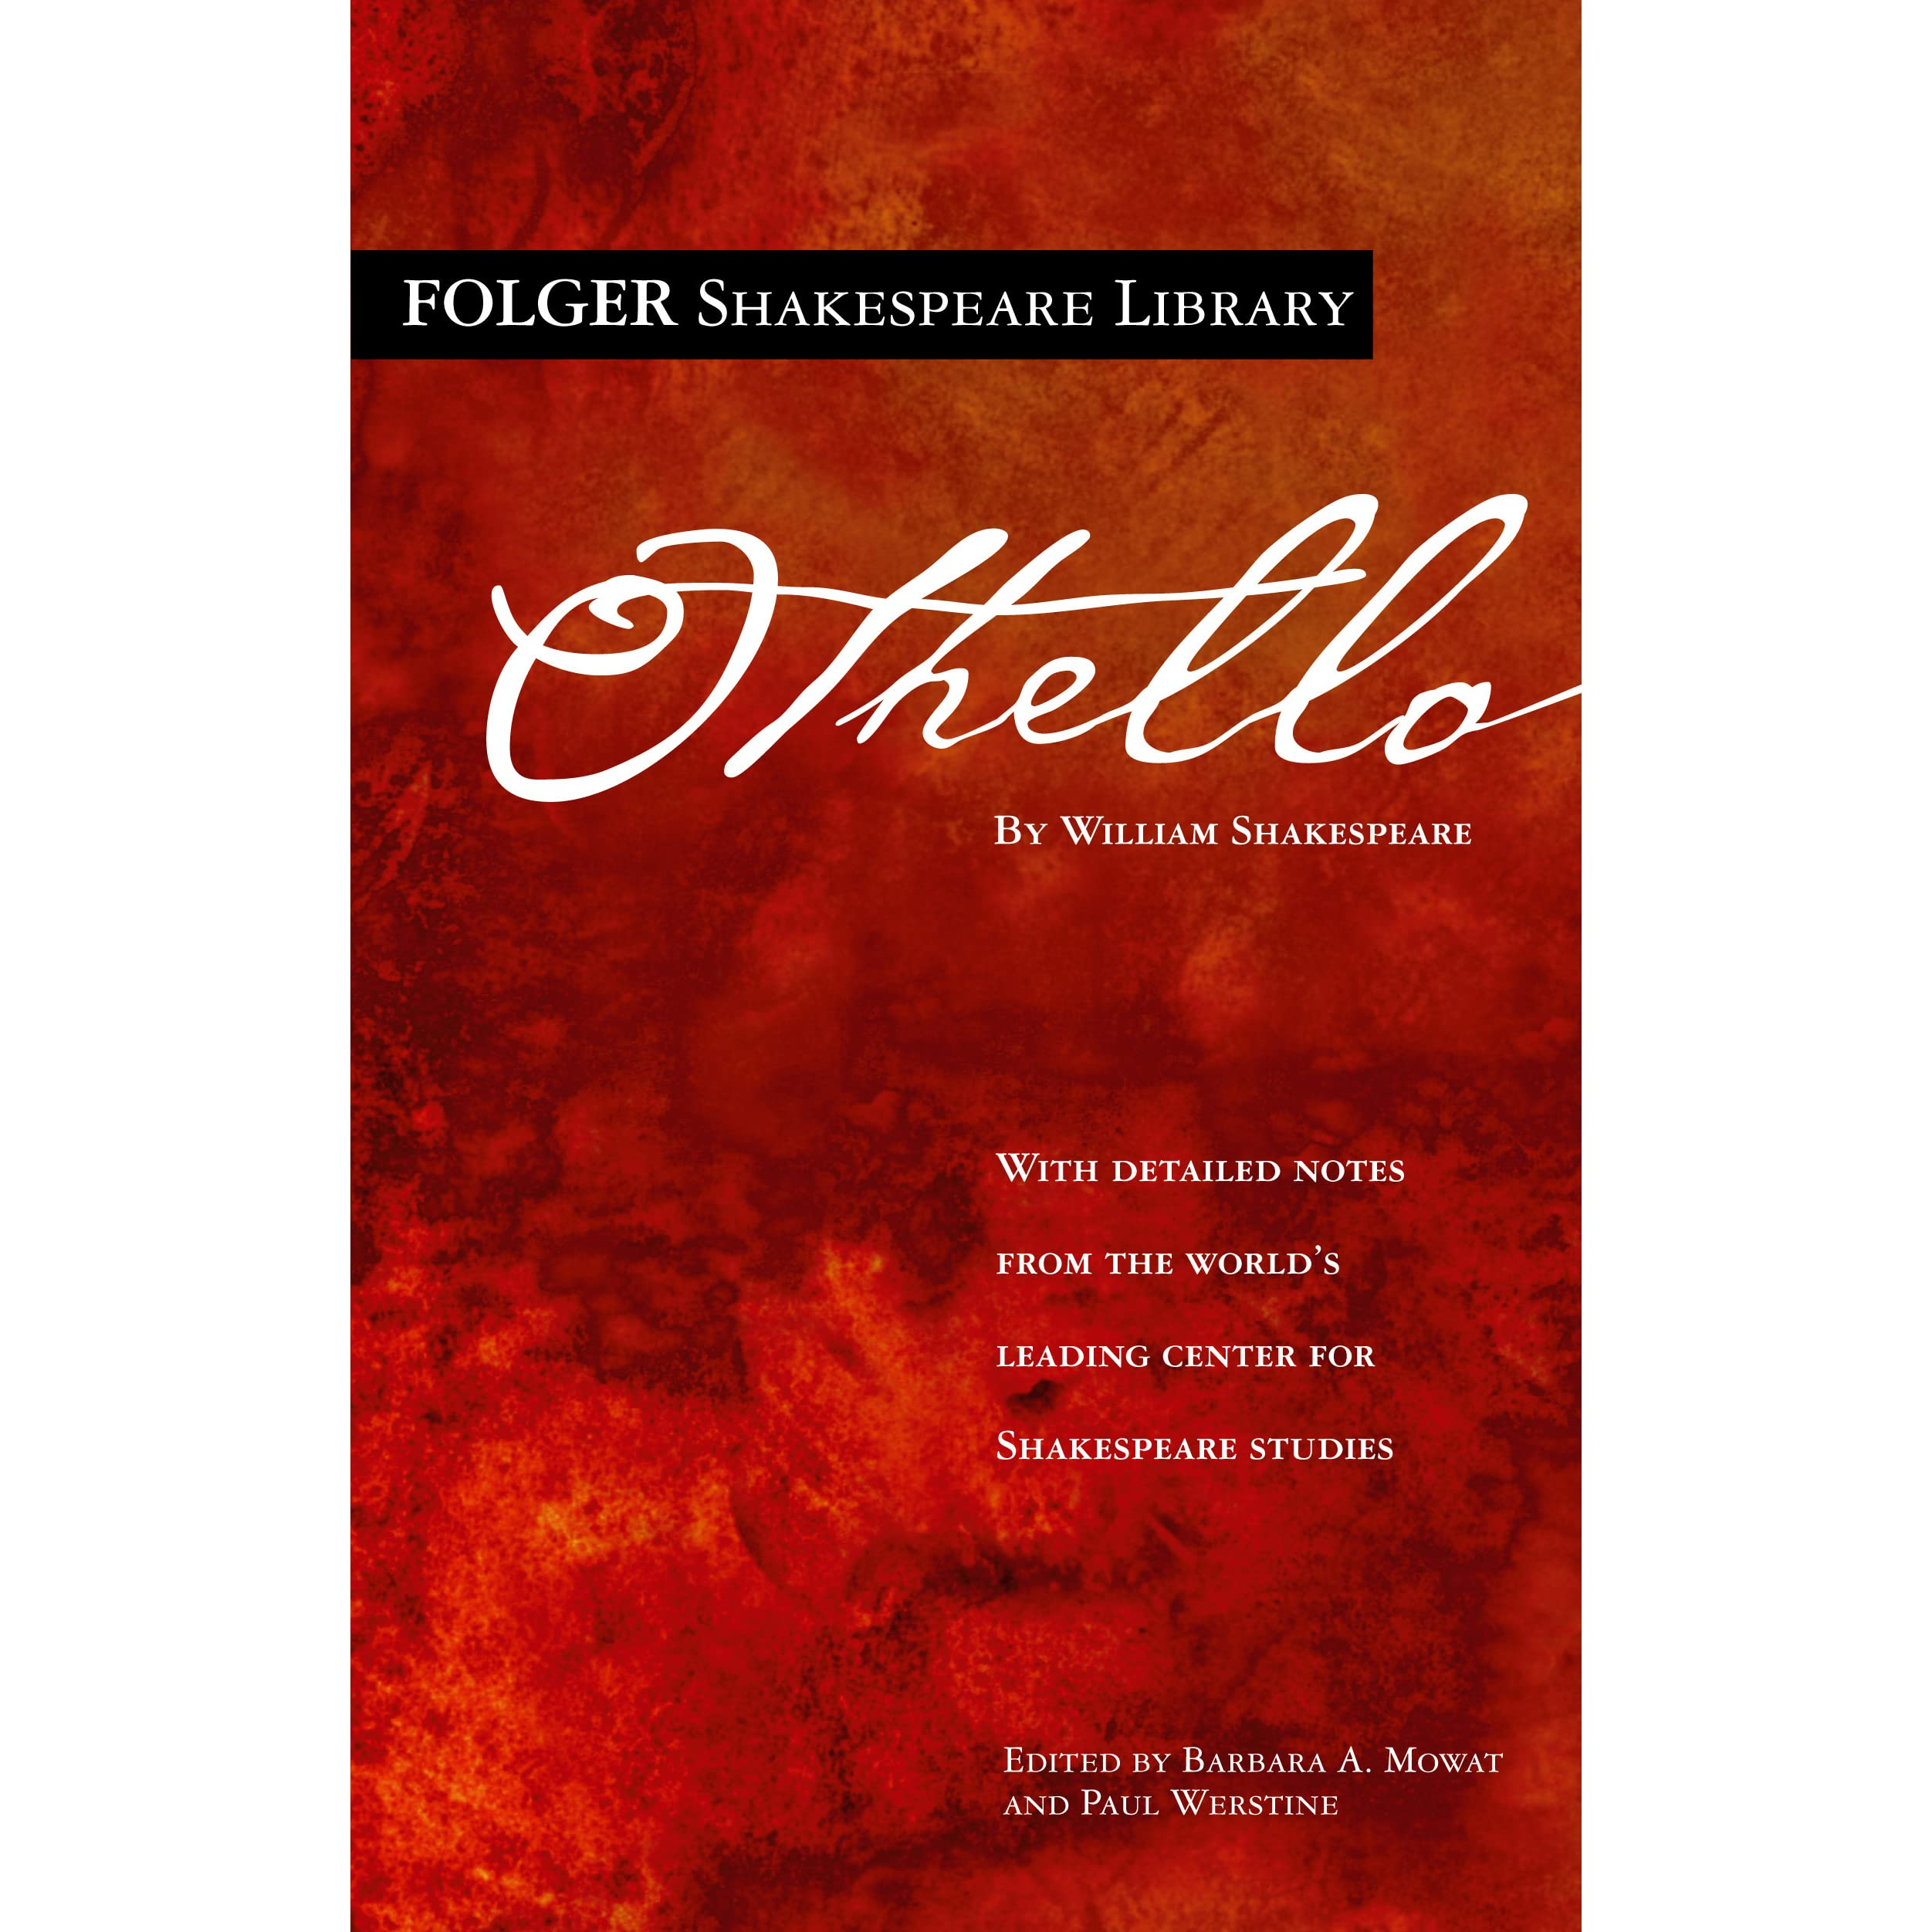 othello by william shakespeare Othello the moor of venice william shakespeare with related readings the emc masterpiece series access editions emc/paradigm publishing st paul, minnesota othello fmqxd 1/14/05 9:25 am.